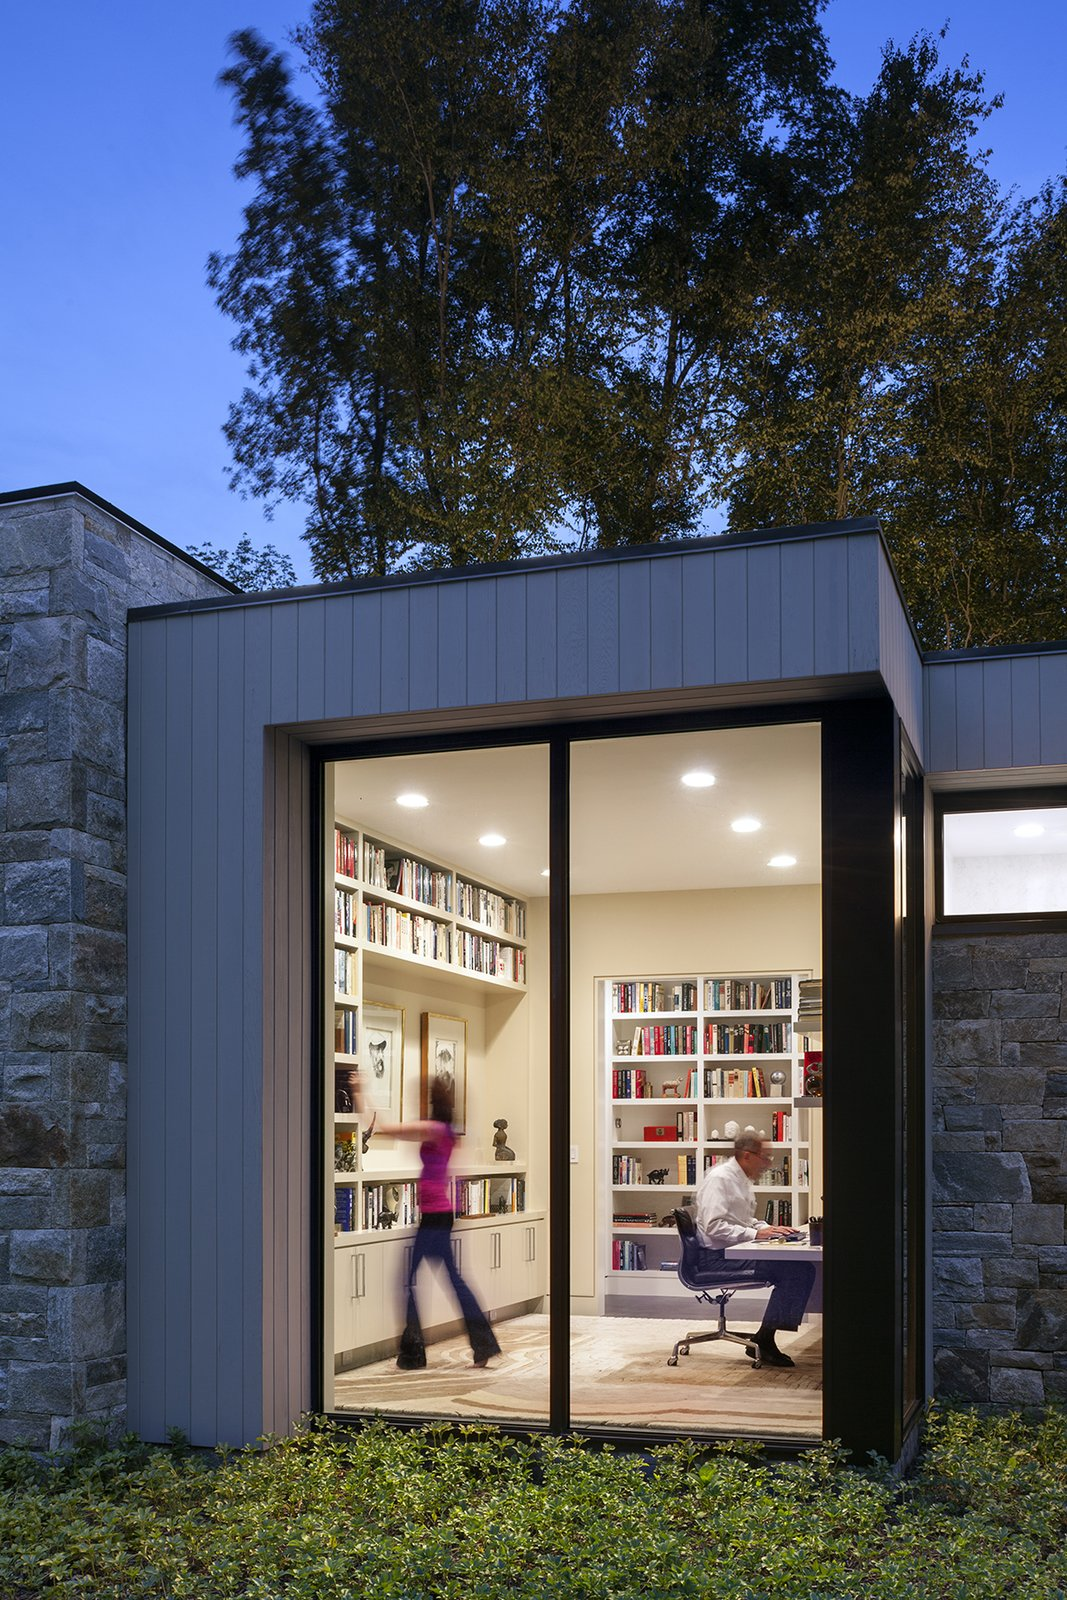 Art House 2.0 Exterior: Library  Photo 6 of 6 in Top 5 Homes of the Week That Let in Natural Light from Art House 2.0